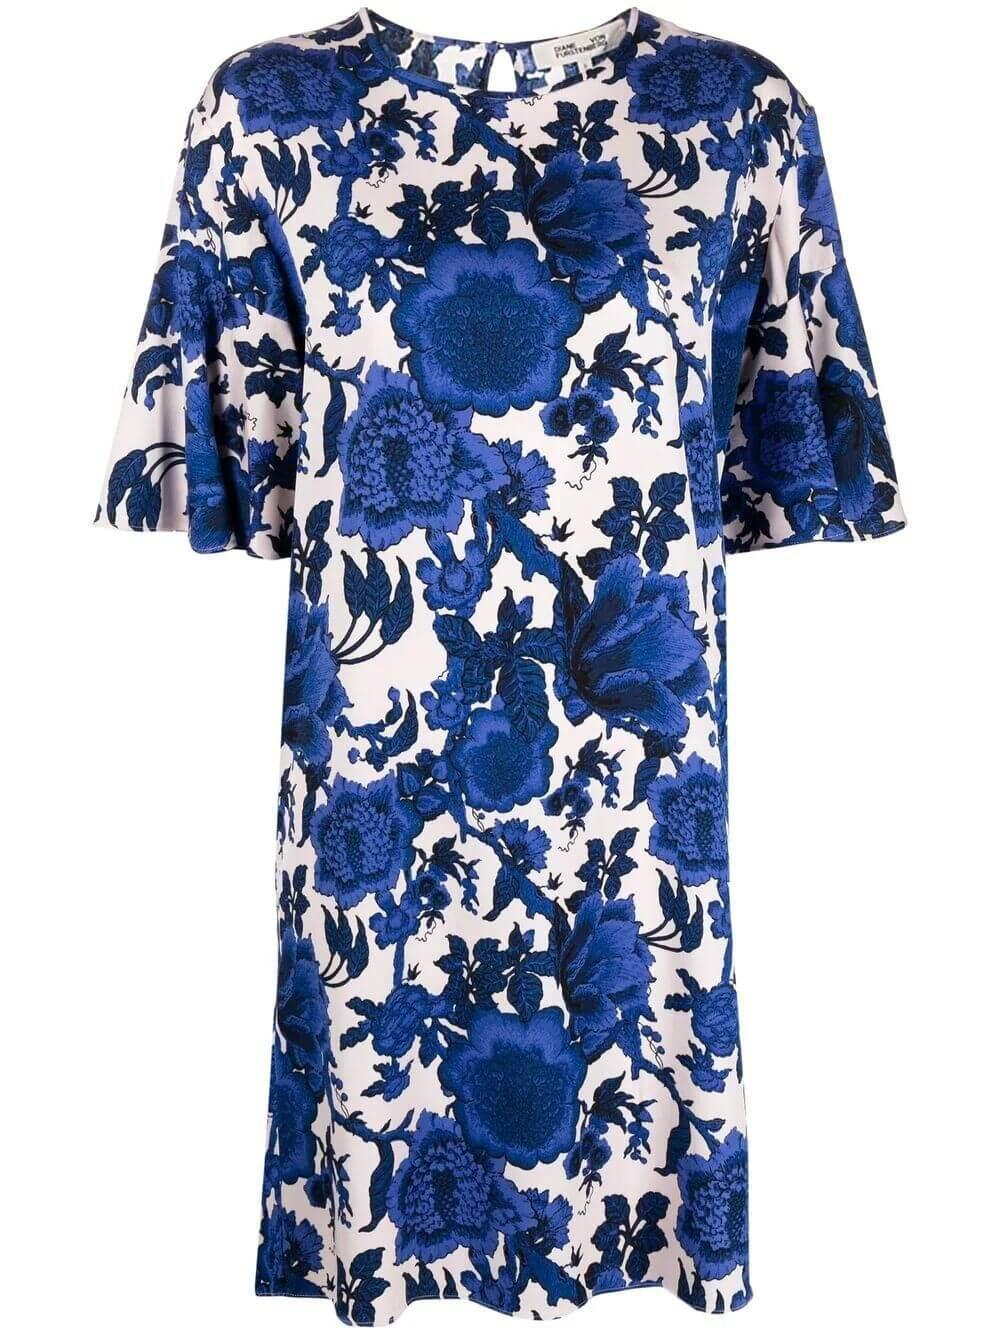 Diane Von Furstenberg Arlene Floral Shift Dress